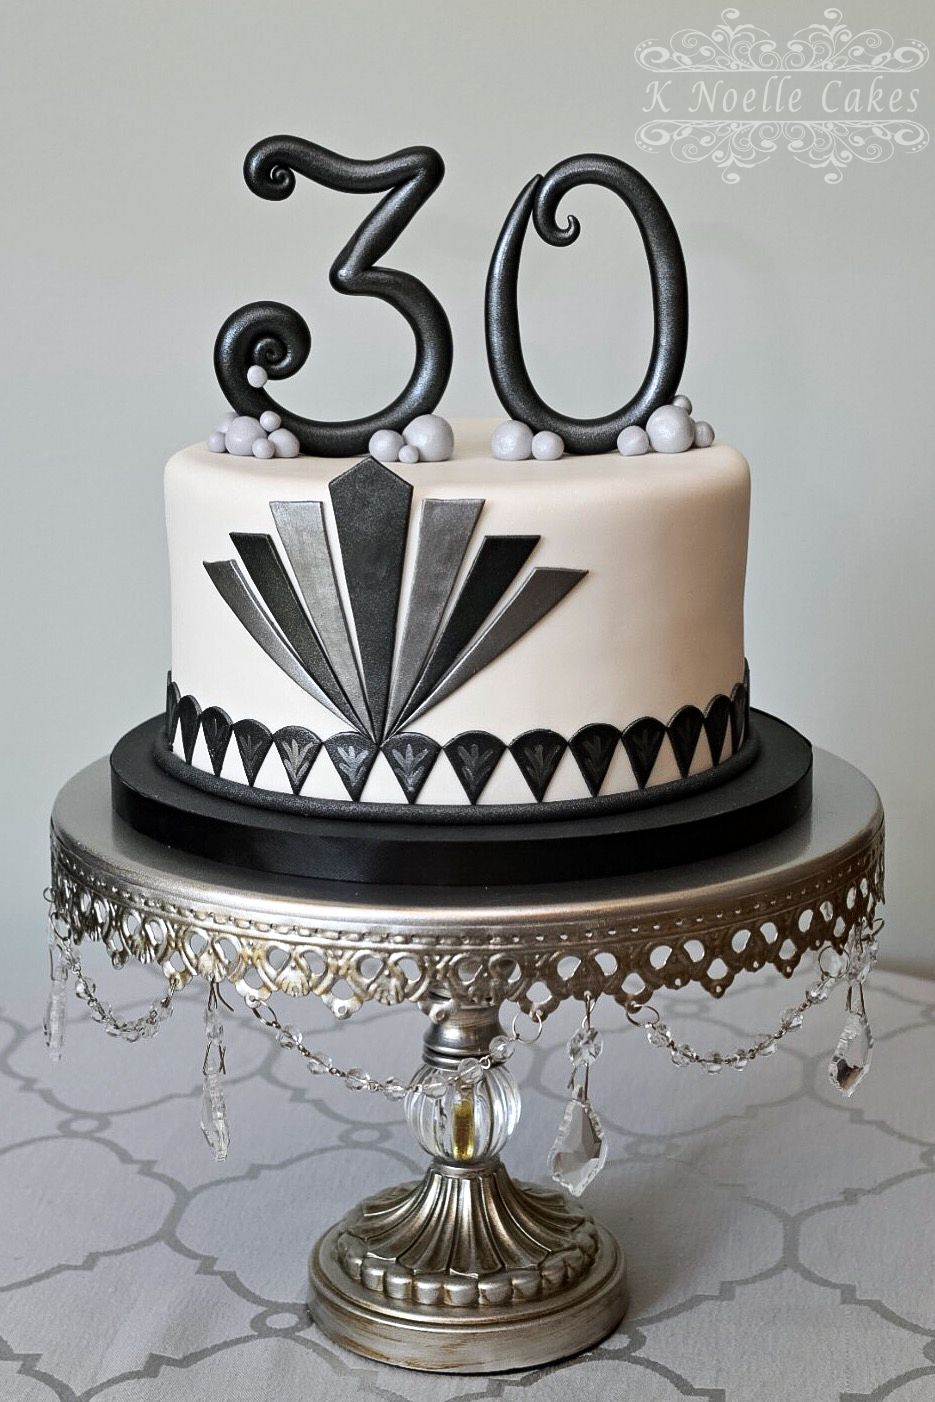 The Great Gatsby Theme Cake By K Noelle Cakes Cakes By K Noelle